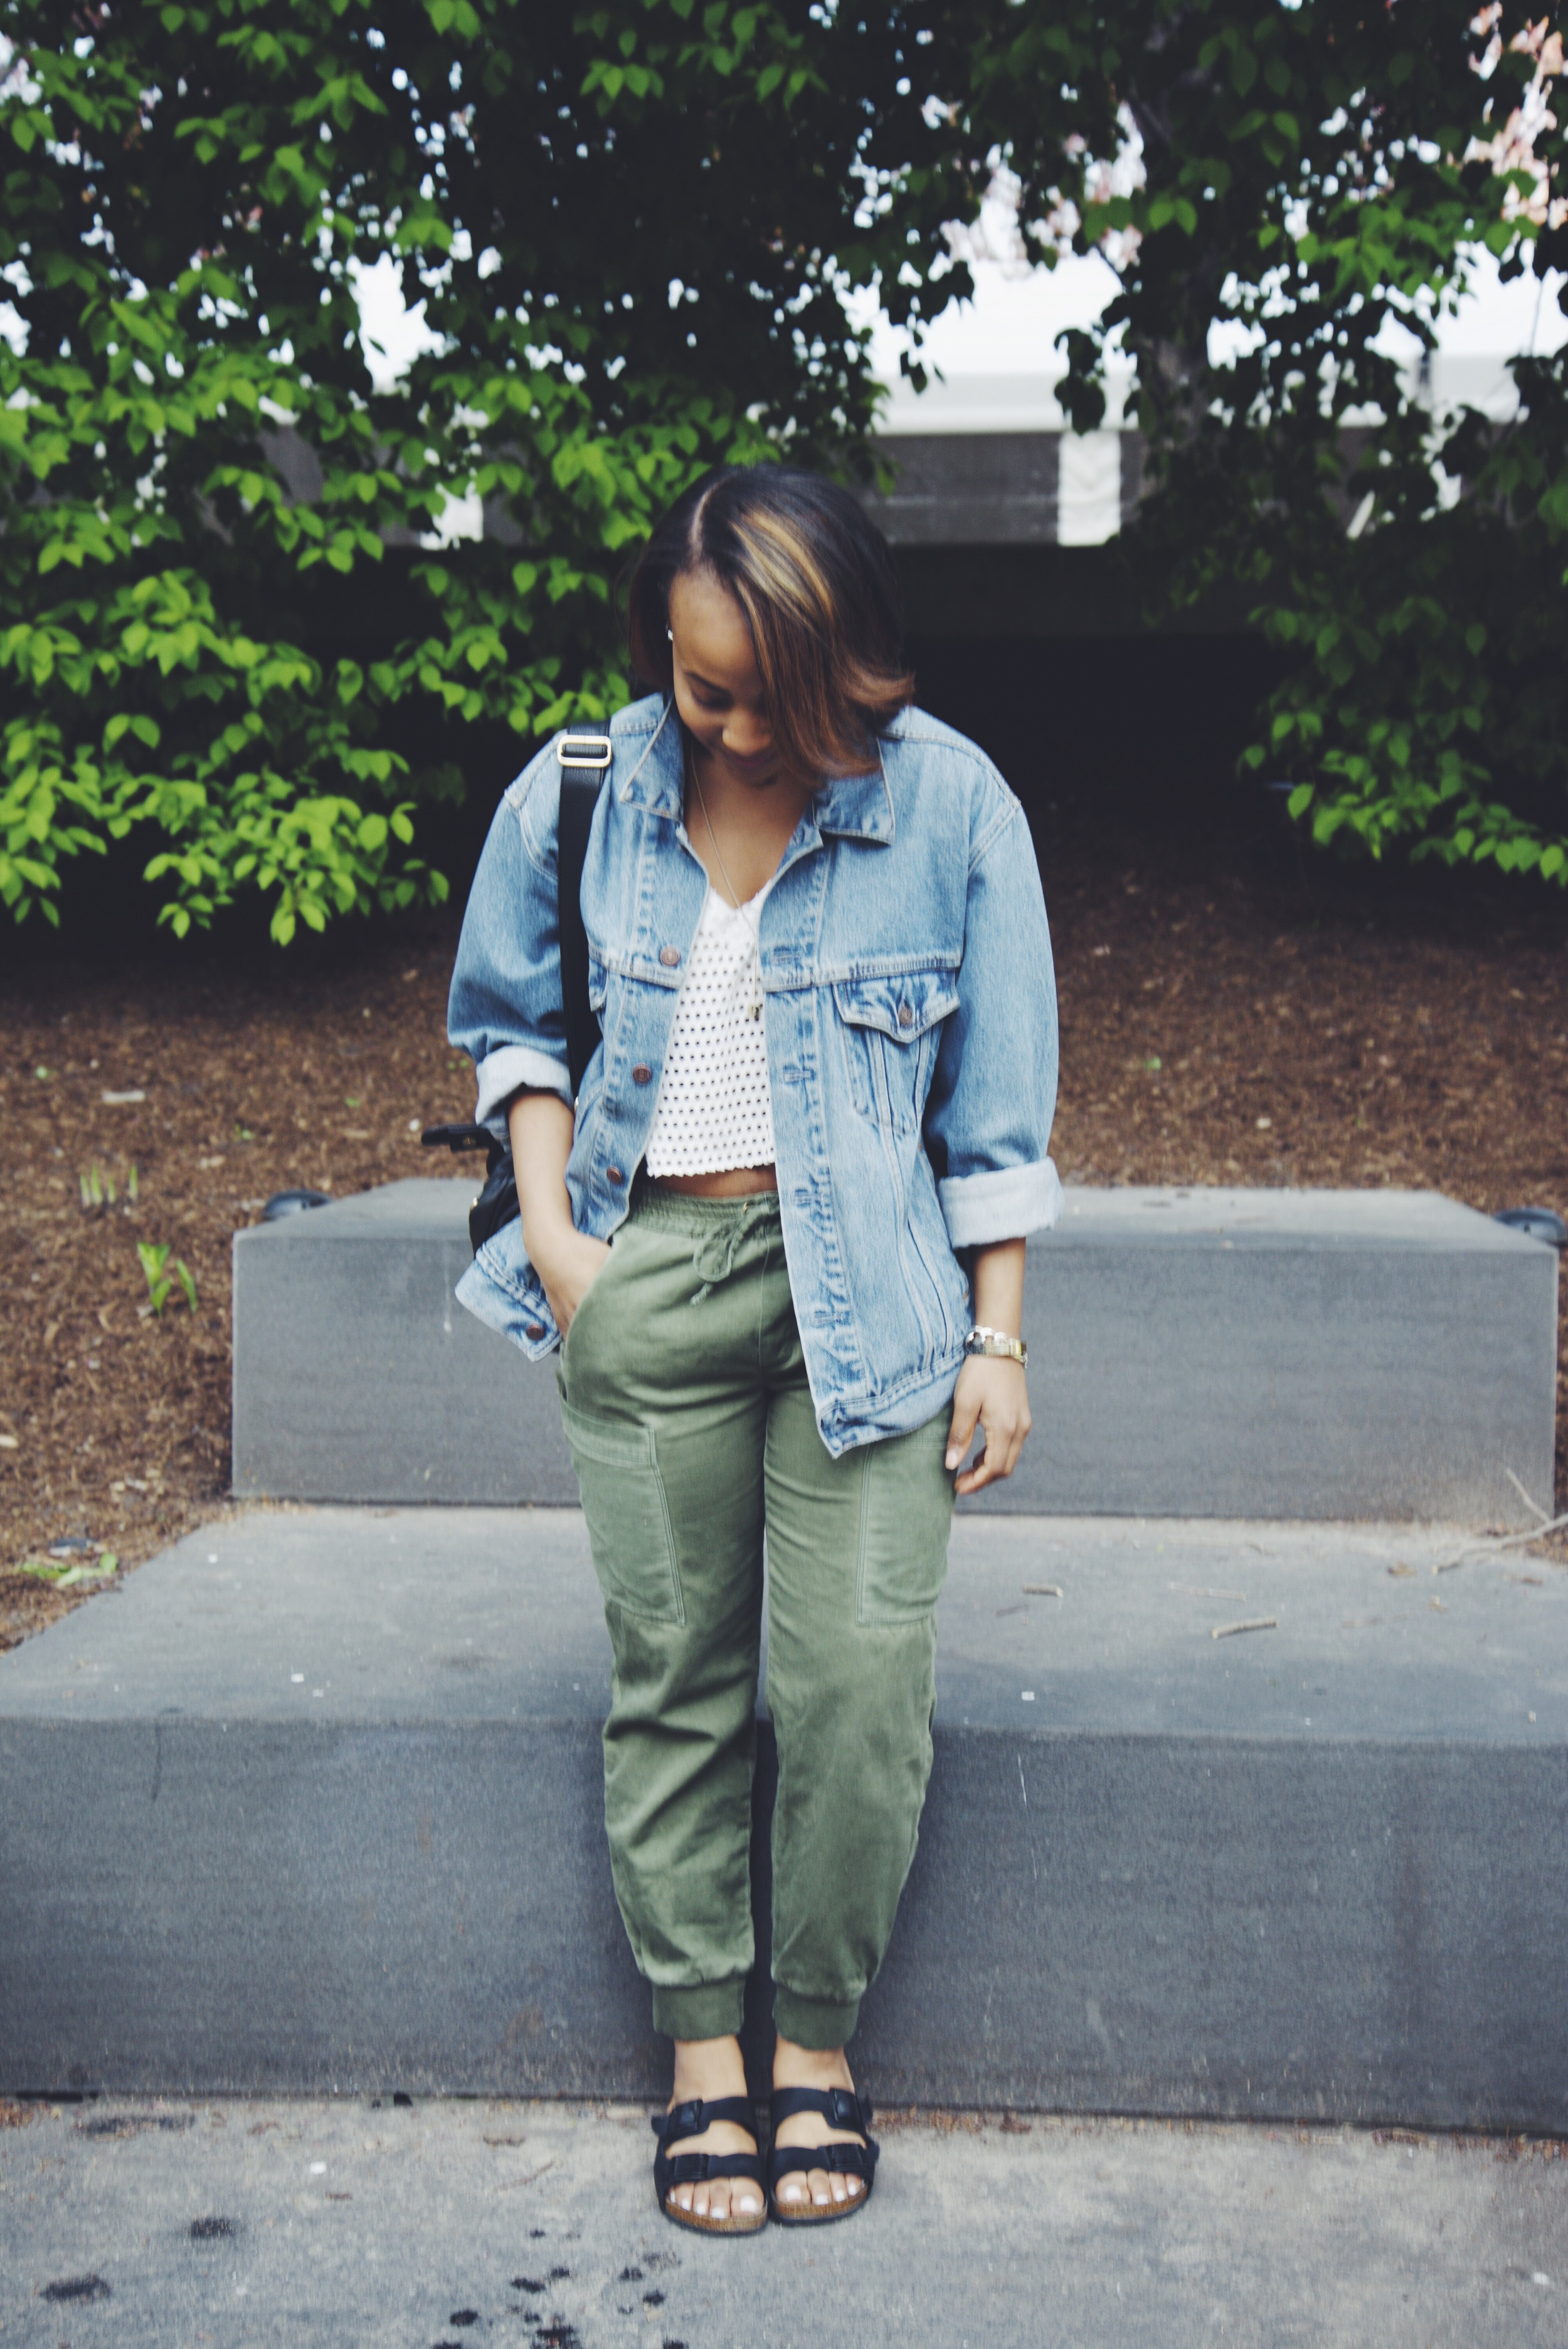 Jacket: Thrifted/ Shirt: Thrifted/ Pants: Zara/ Shoes: Asos/ Bag: Urban Outfitters